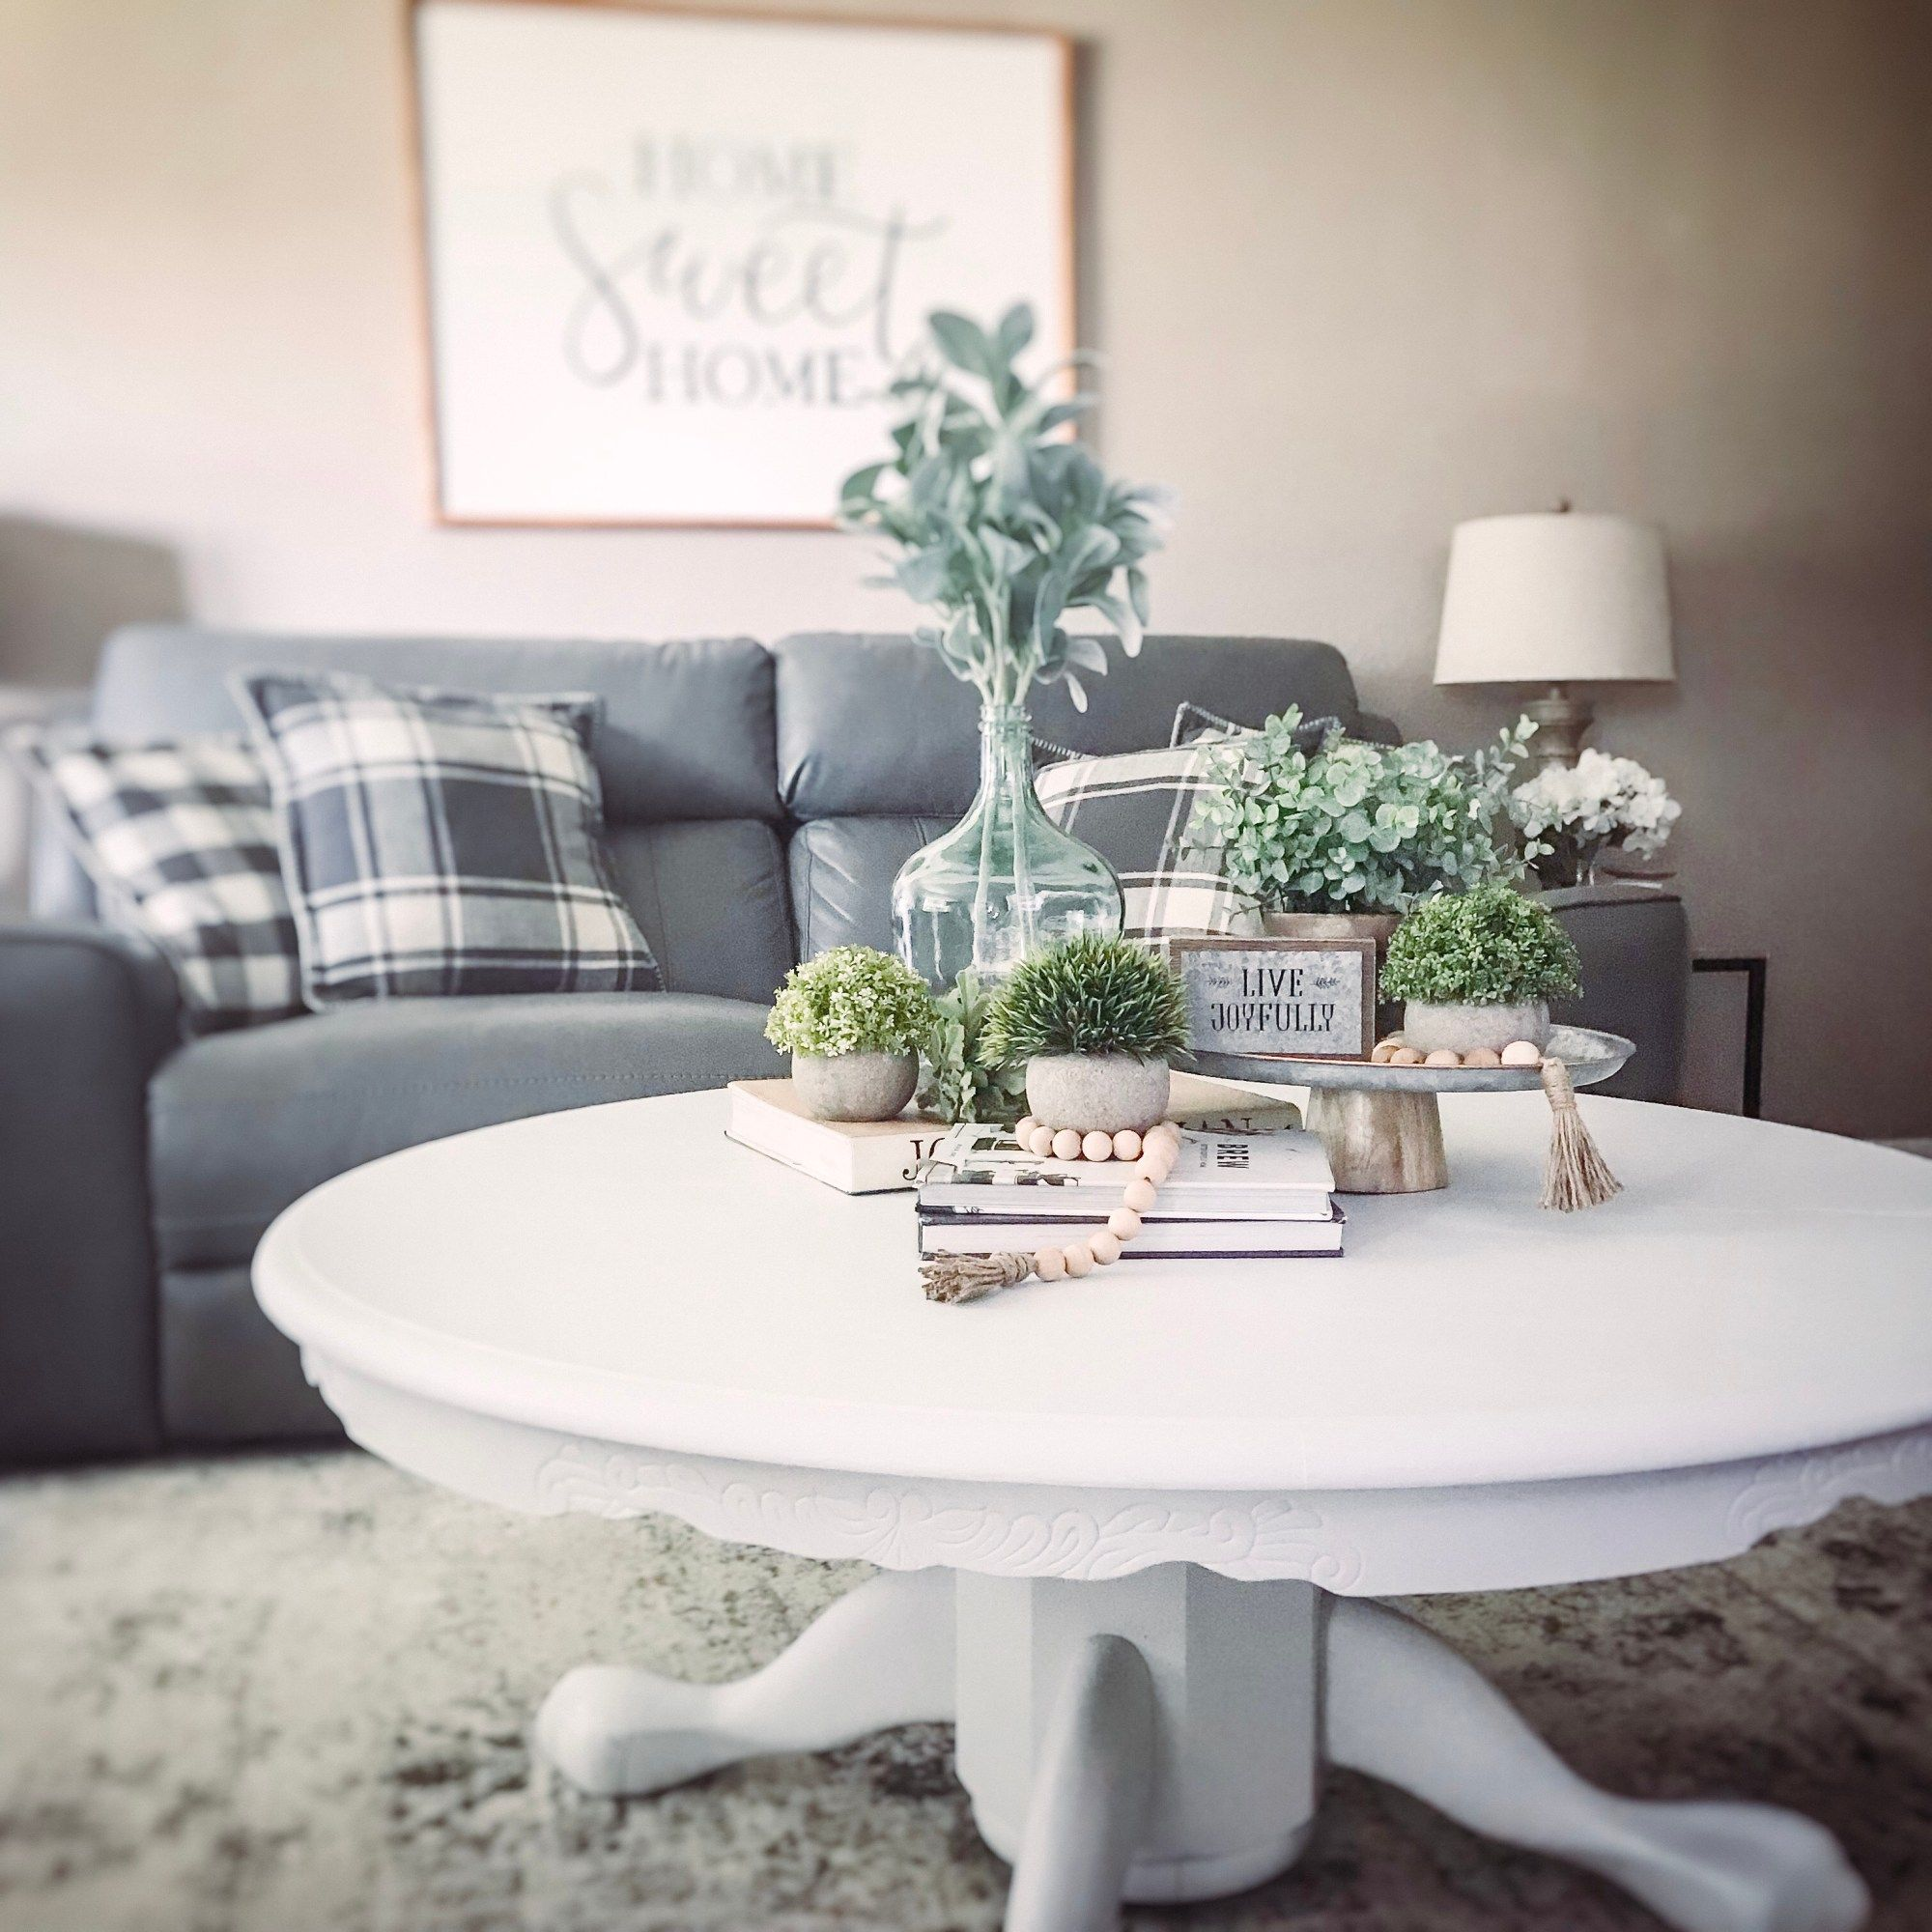 How To Convert A Pedestal Table Into A Coffee Table Embracing The Chaos Round Coffee Table Living Room Pedestal Coffee Table Coffee Table